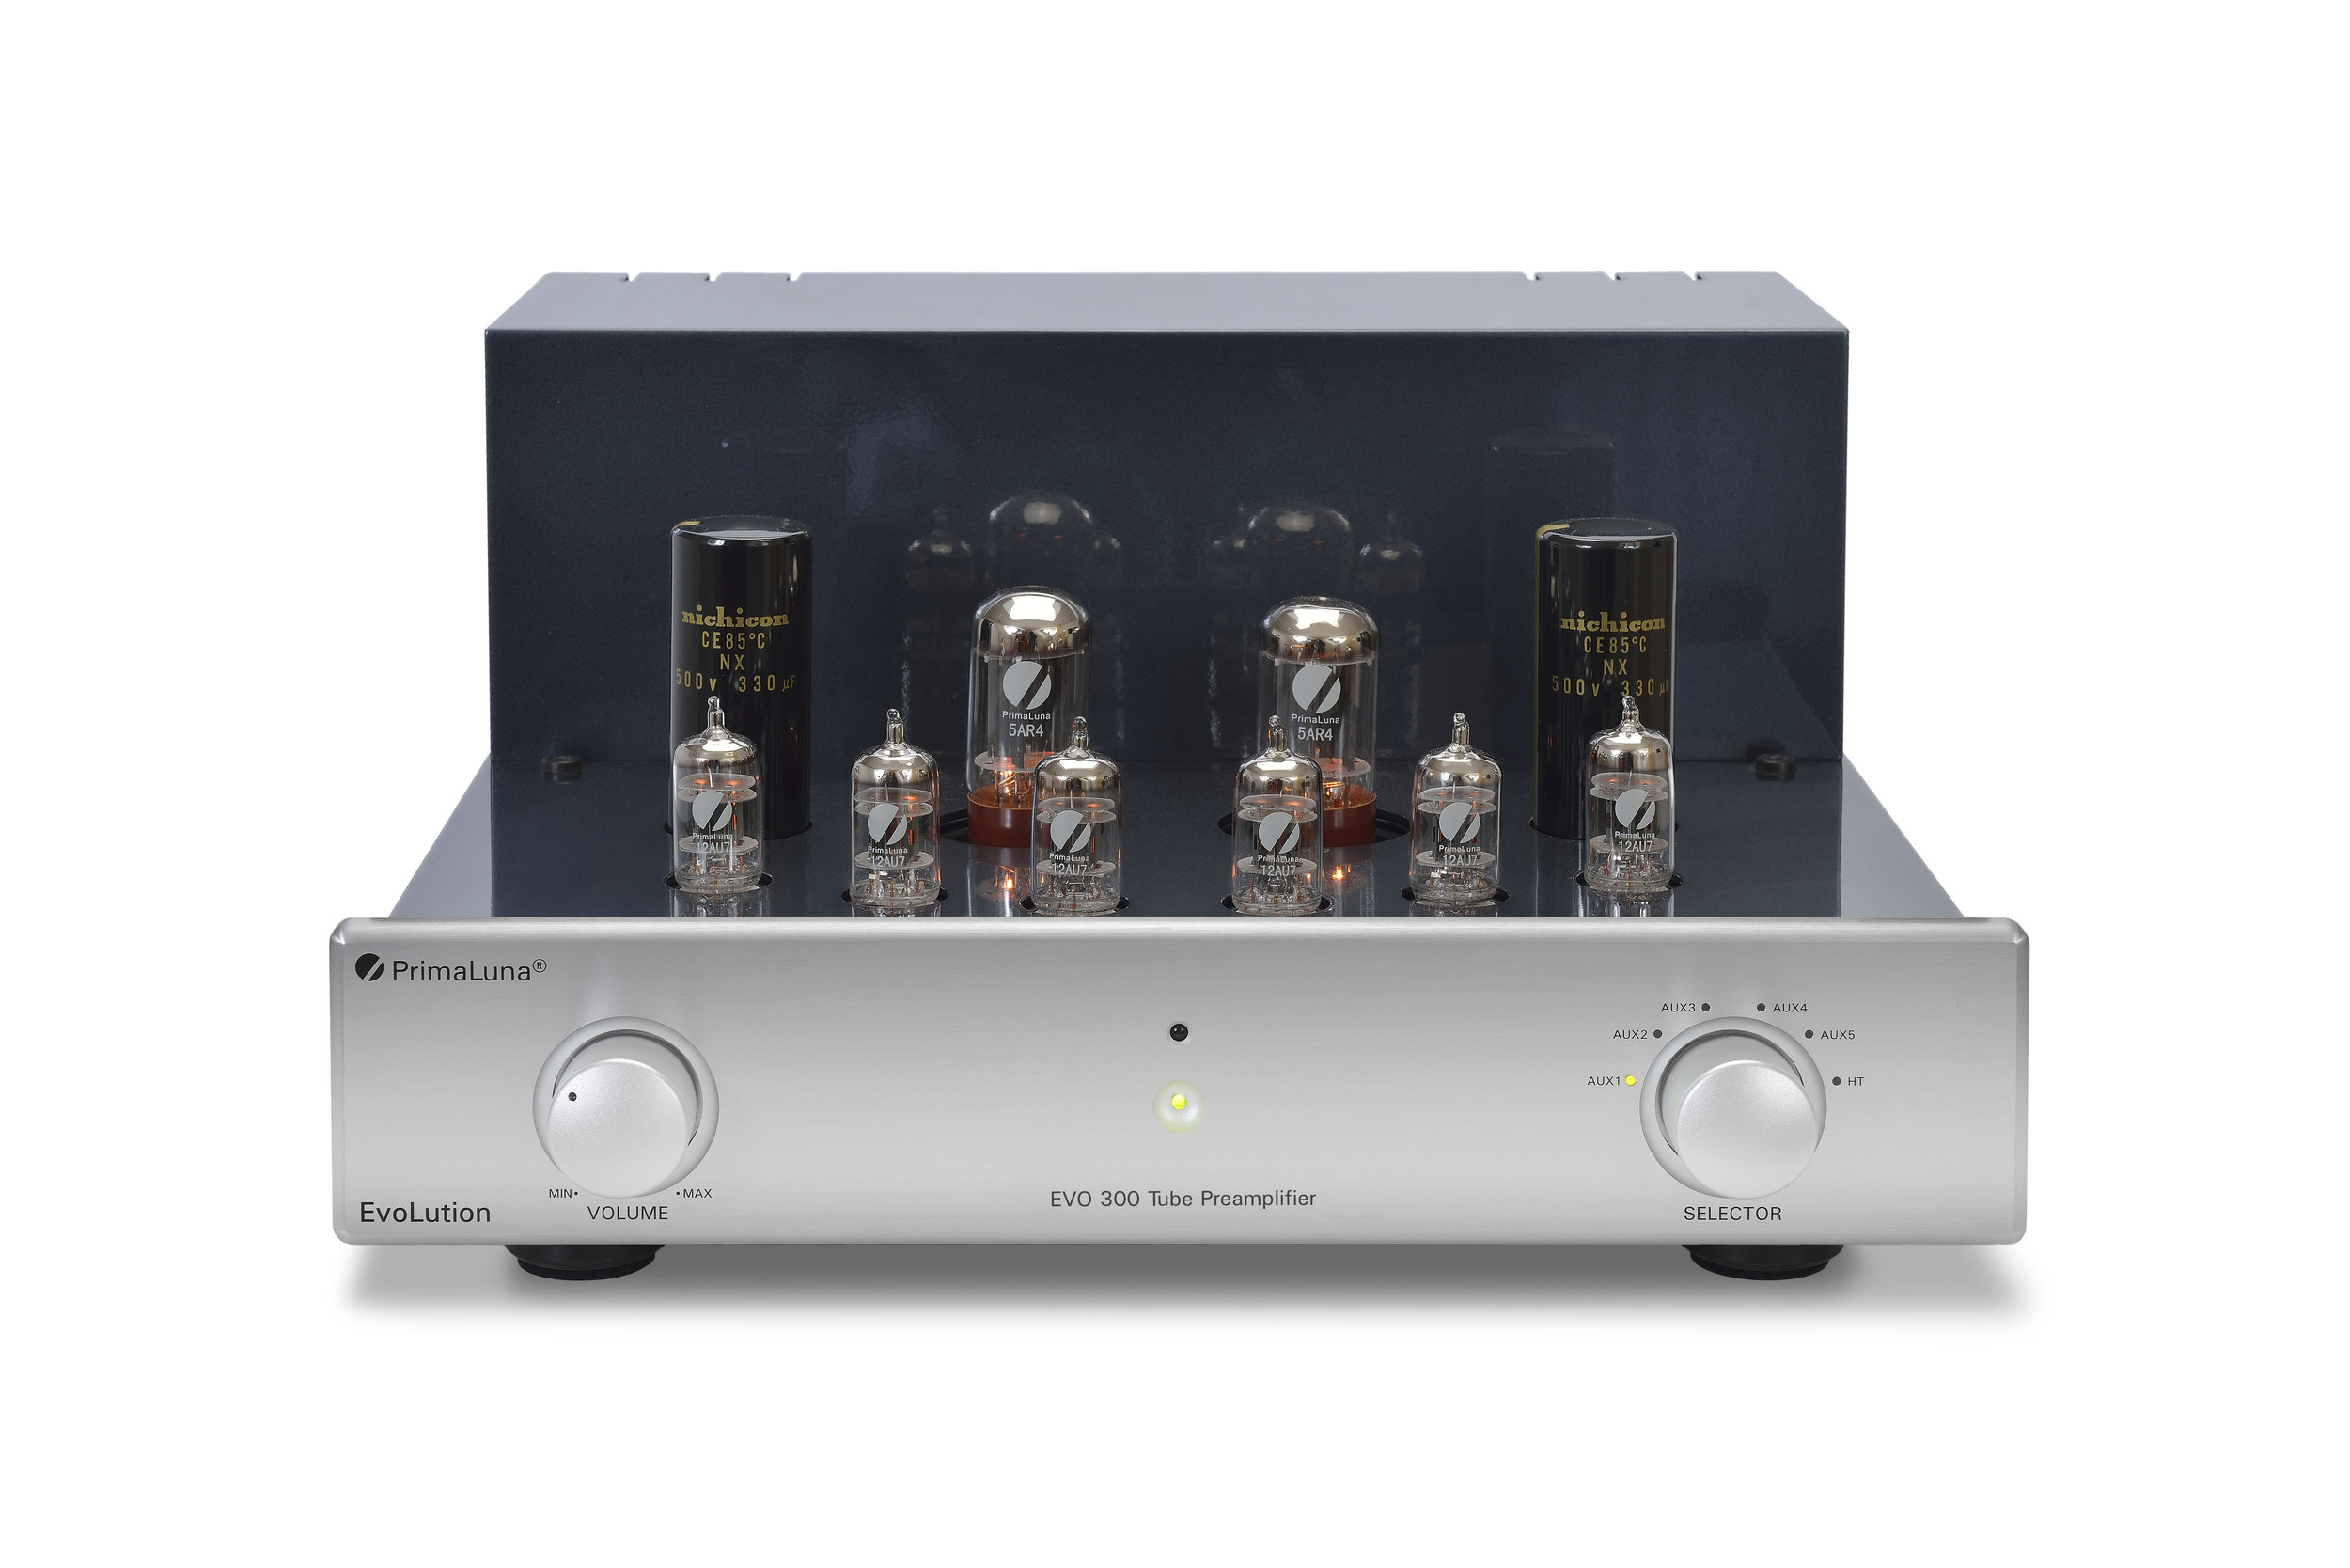 013b - PrimaLuna Evo 300 Tube Preamplifier - silver - front - without cage - white background.jpg